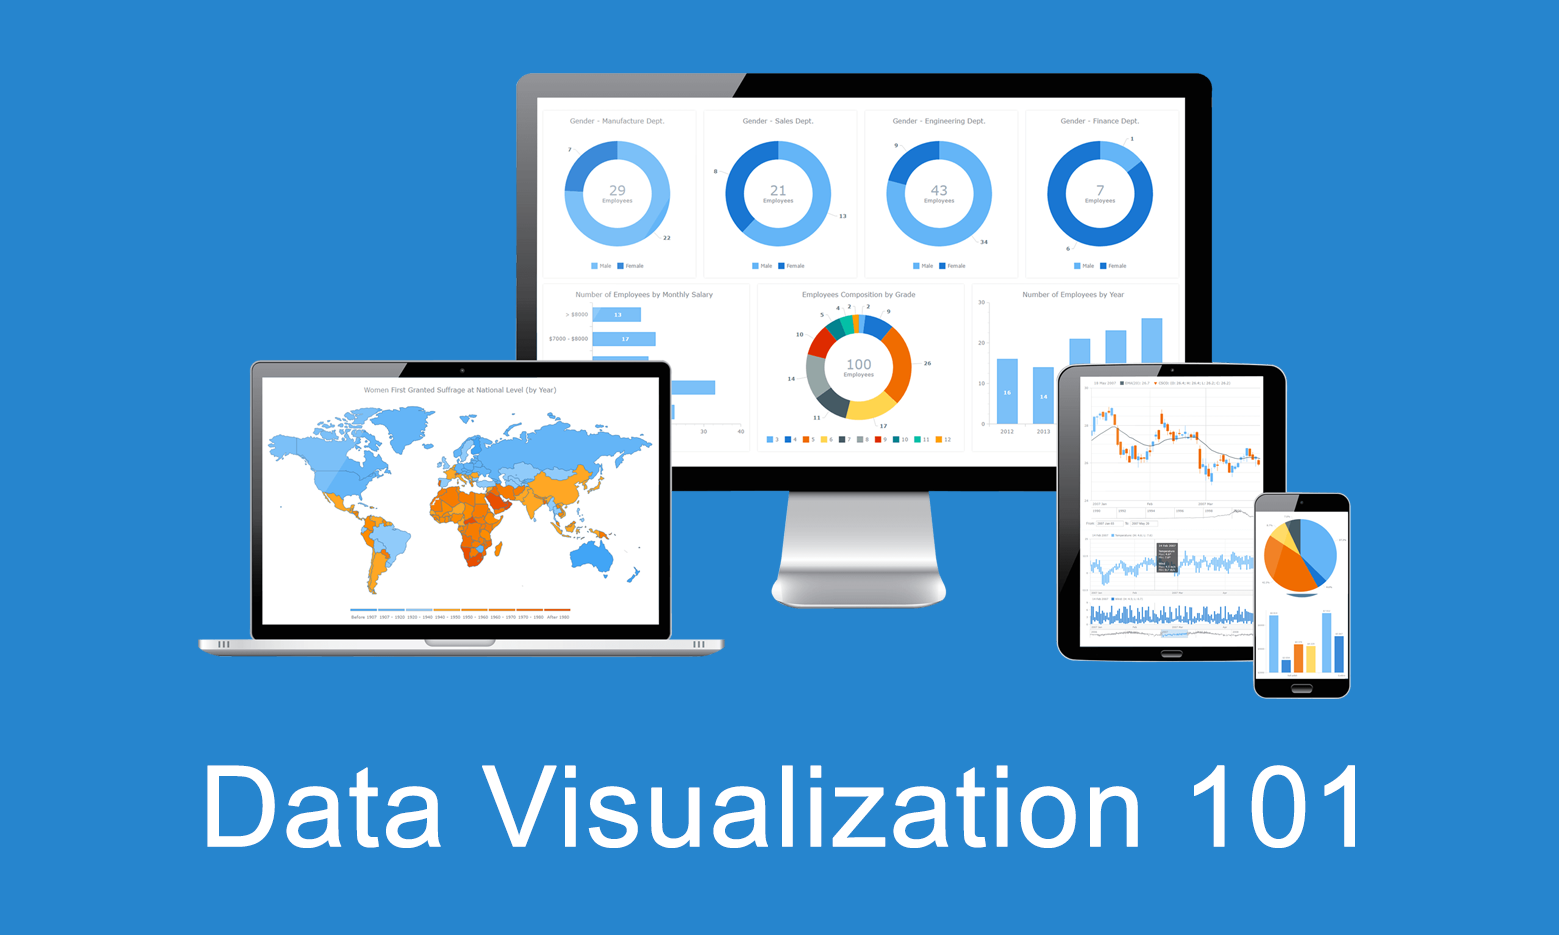 Data Visualization 101: What is data visualization? Definition, history, and examples